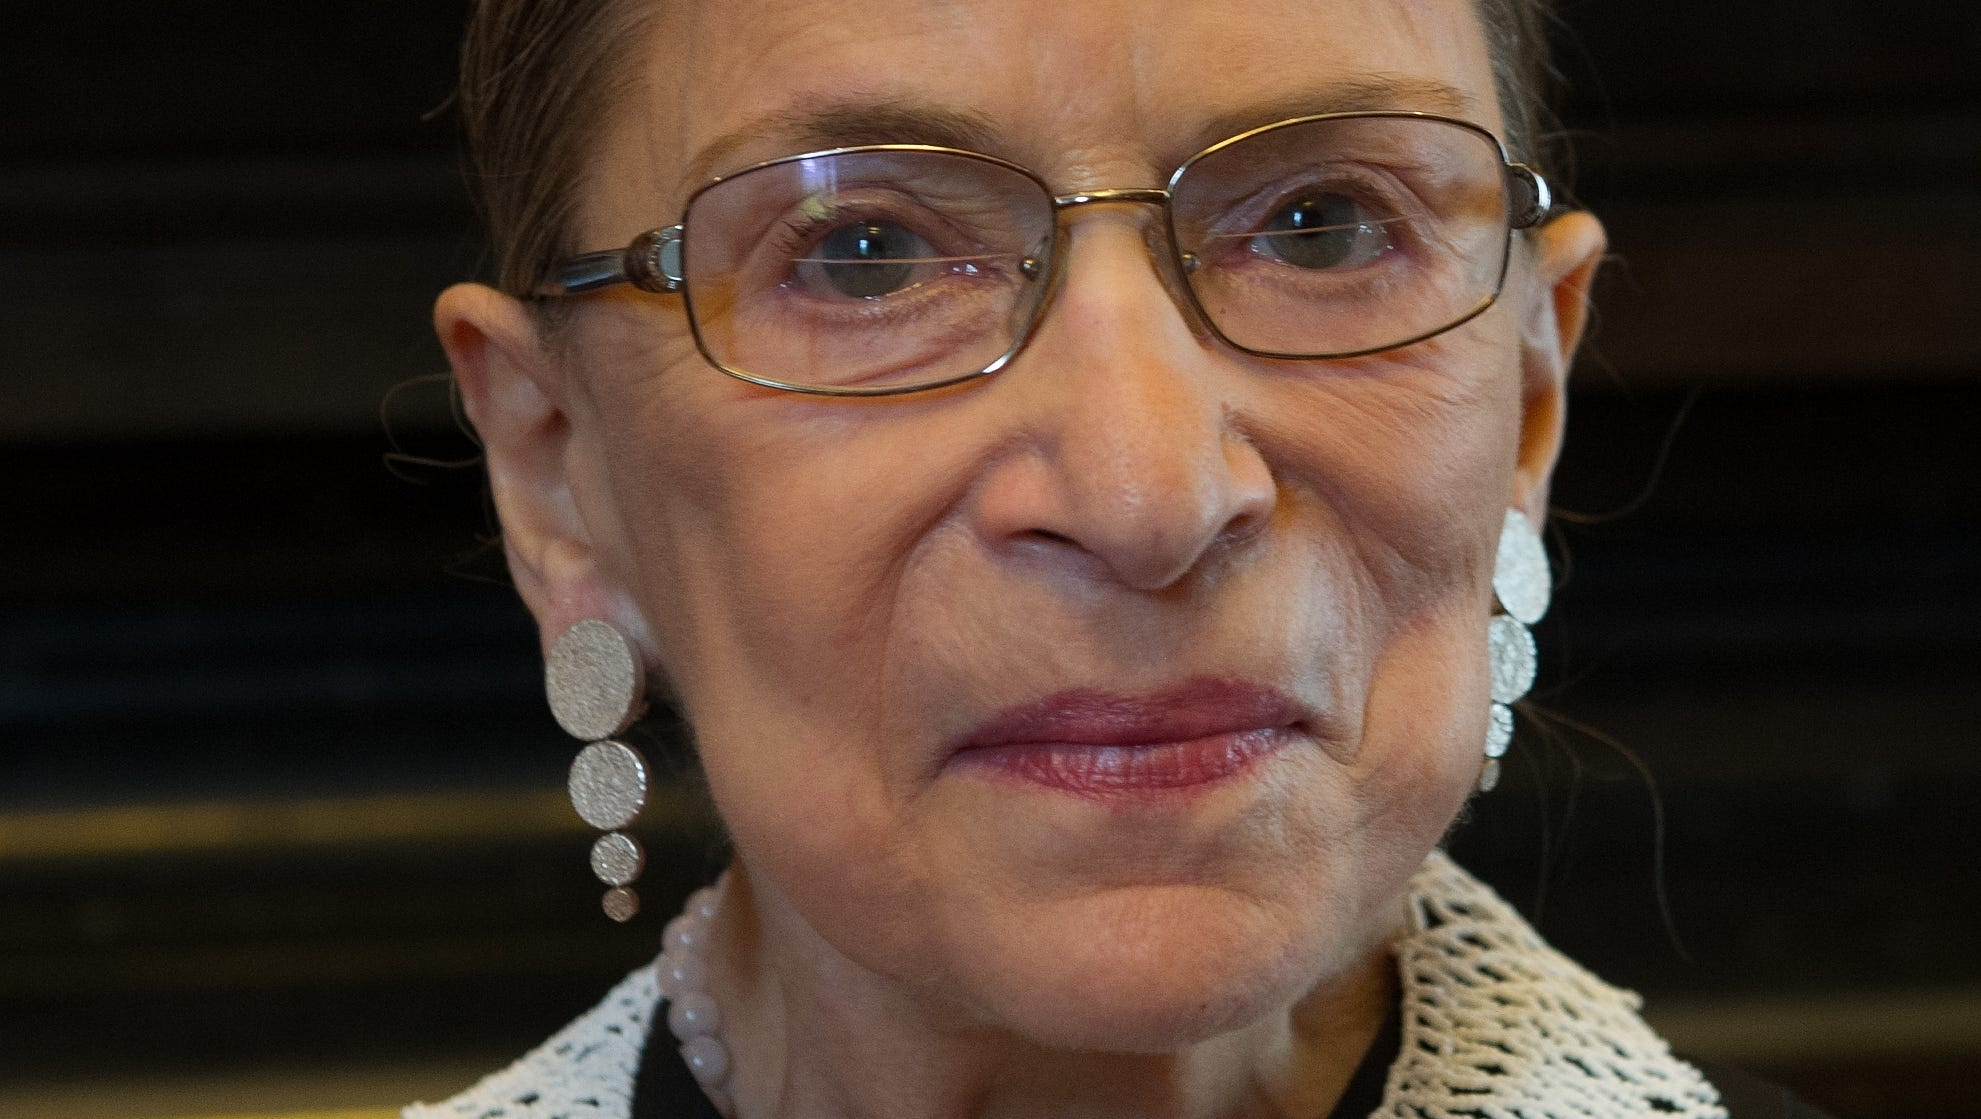 Ruth Bader Ginsburg: Second woman on Supreme Court had been nation's leading litigator for women's rights